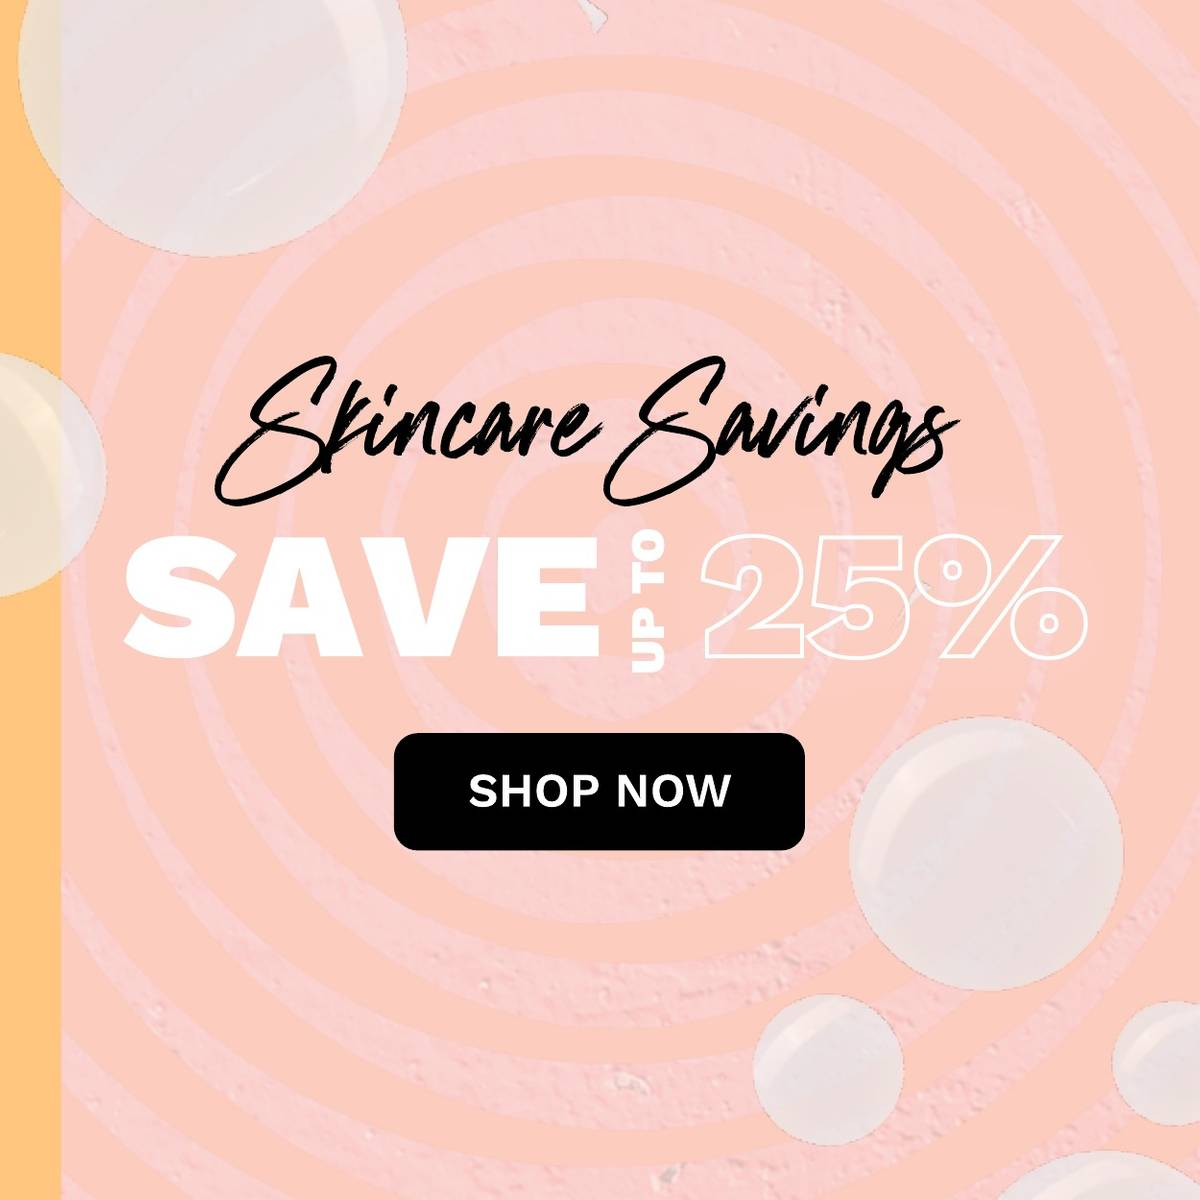 Up to 30% off skincare